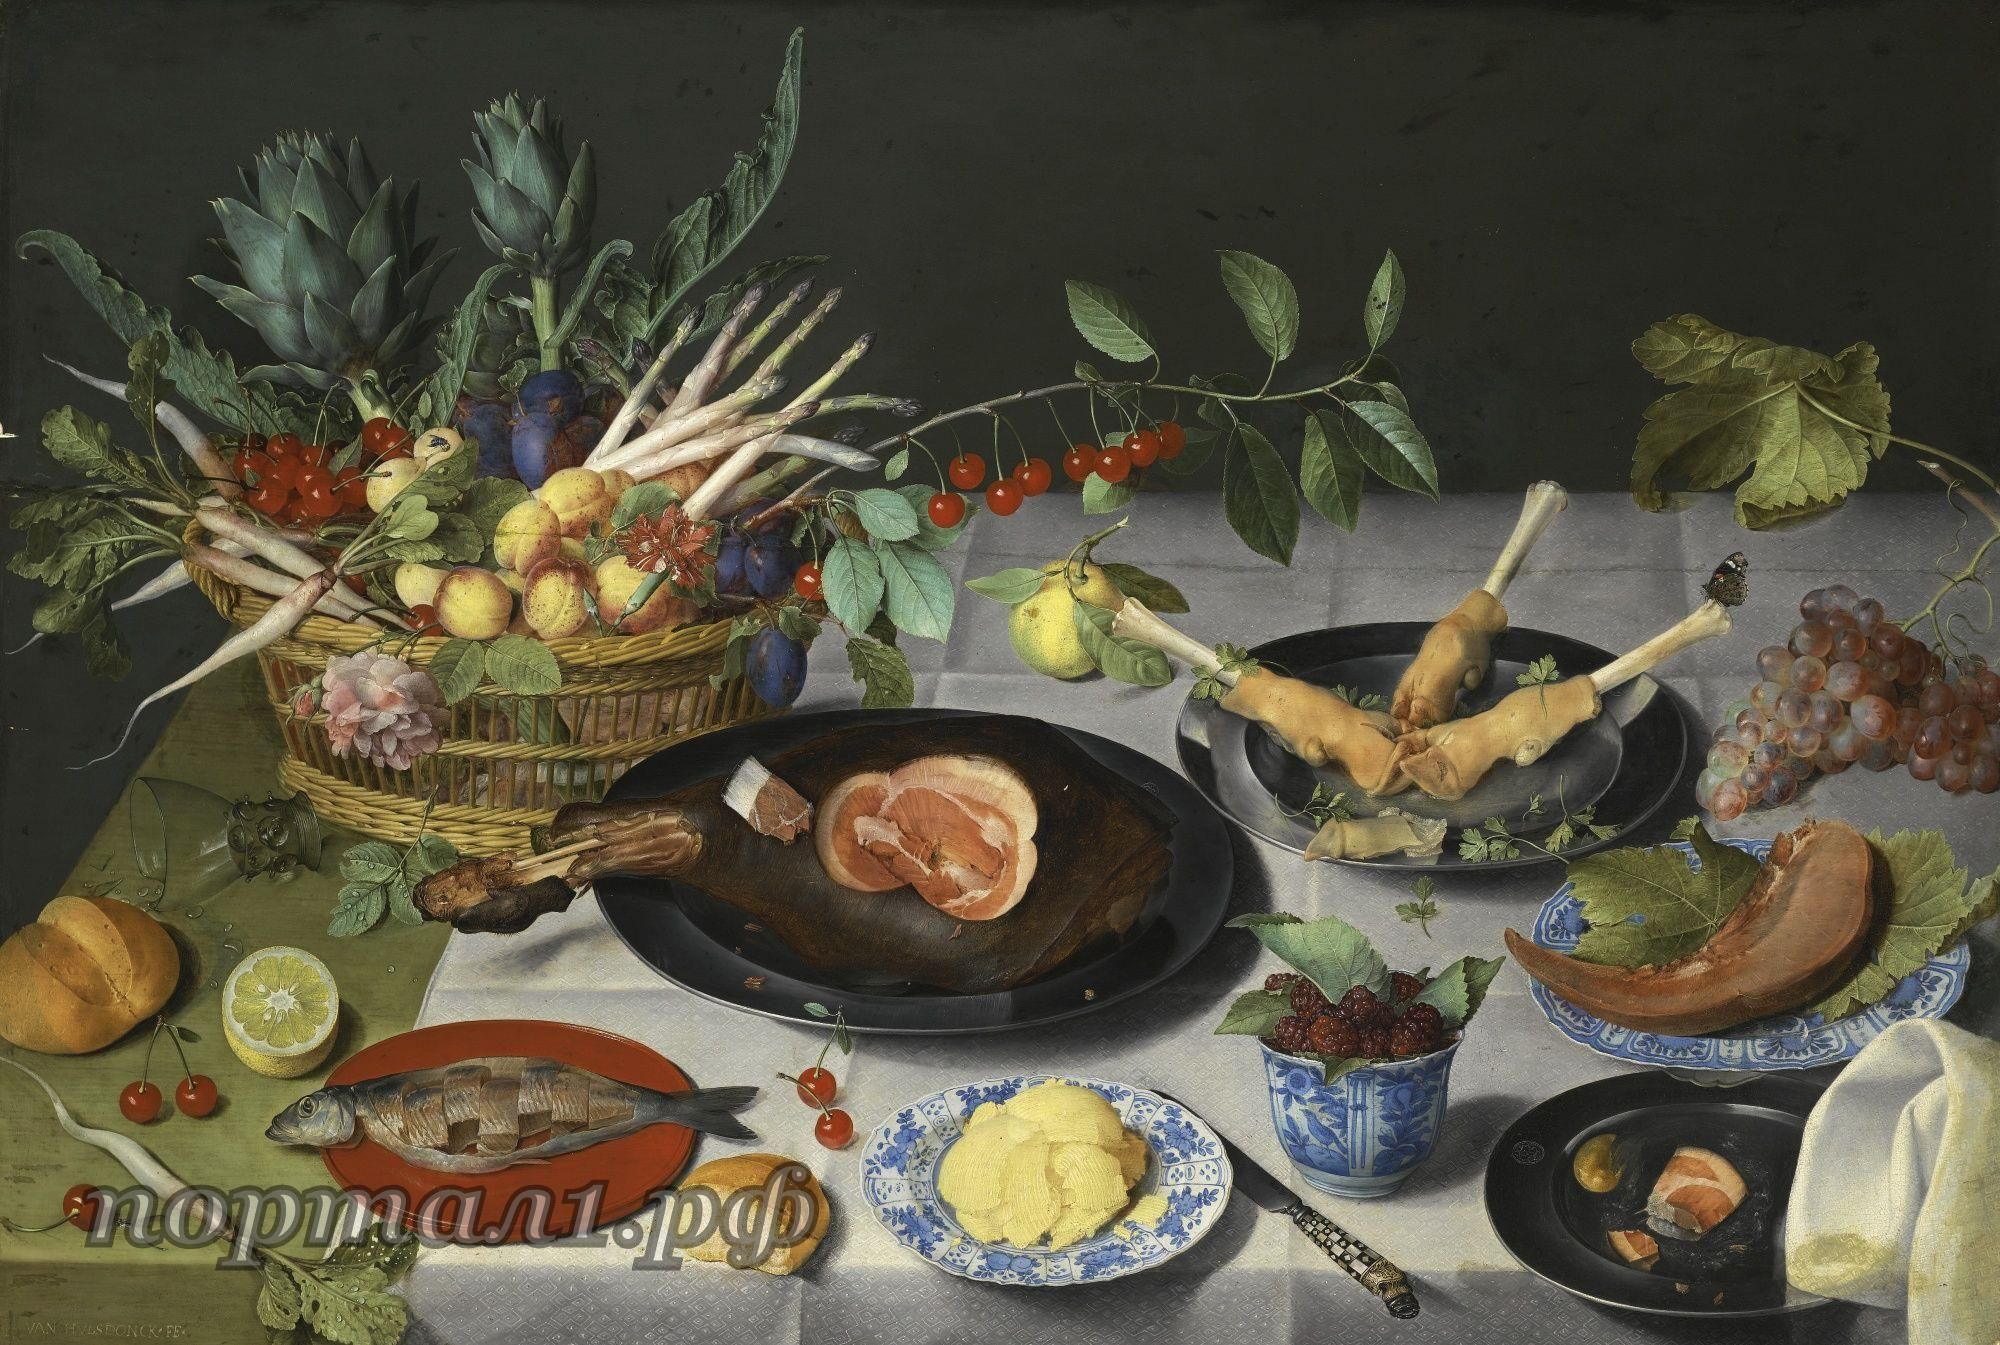 JACOB VAN HULSDONCKANTWERP 1582 - 1647A STILL LIFE WITH ARTICHOKES, RADISHES, ASPARAGUS, PLUMS, CHERRIES AND PEACHES IN A BASKET, TOGETHER WITH A HAM AND PIG'S TROTTERS ON PEWTER PLATE